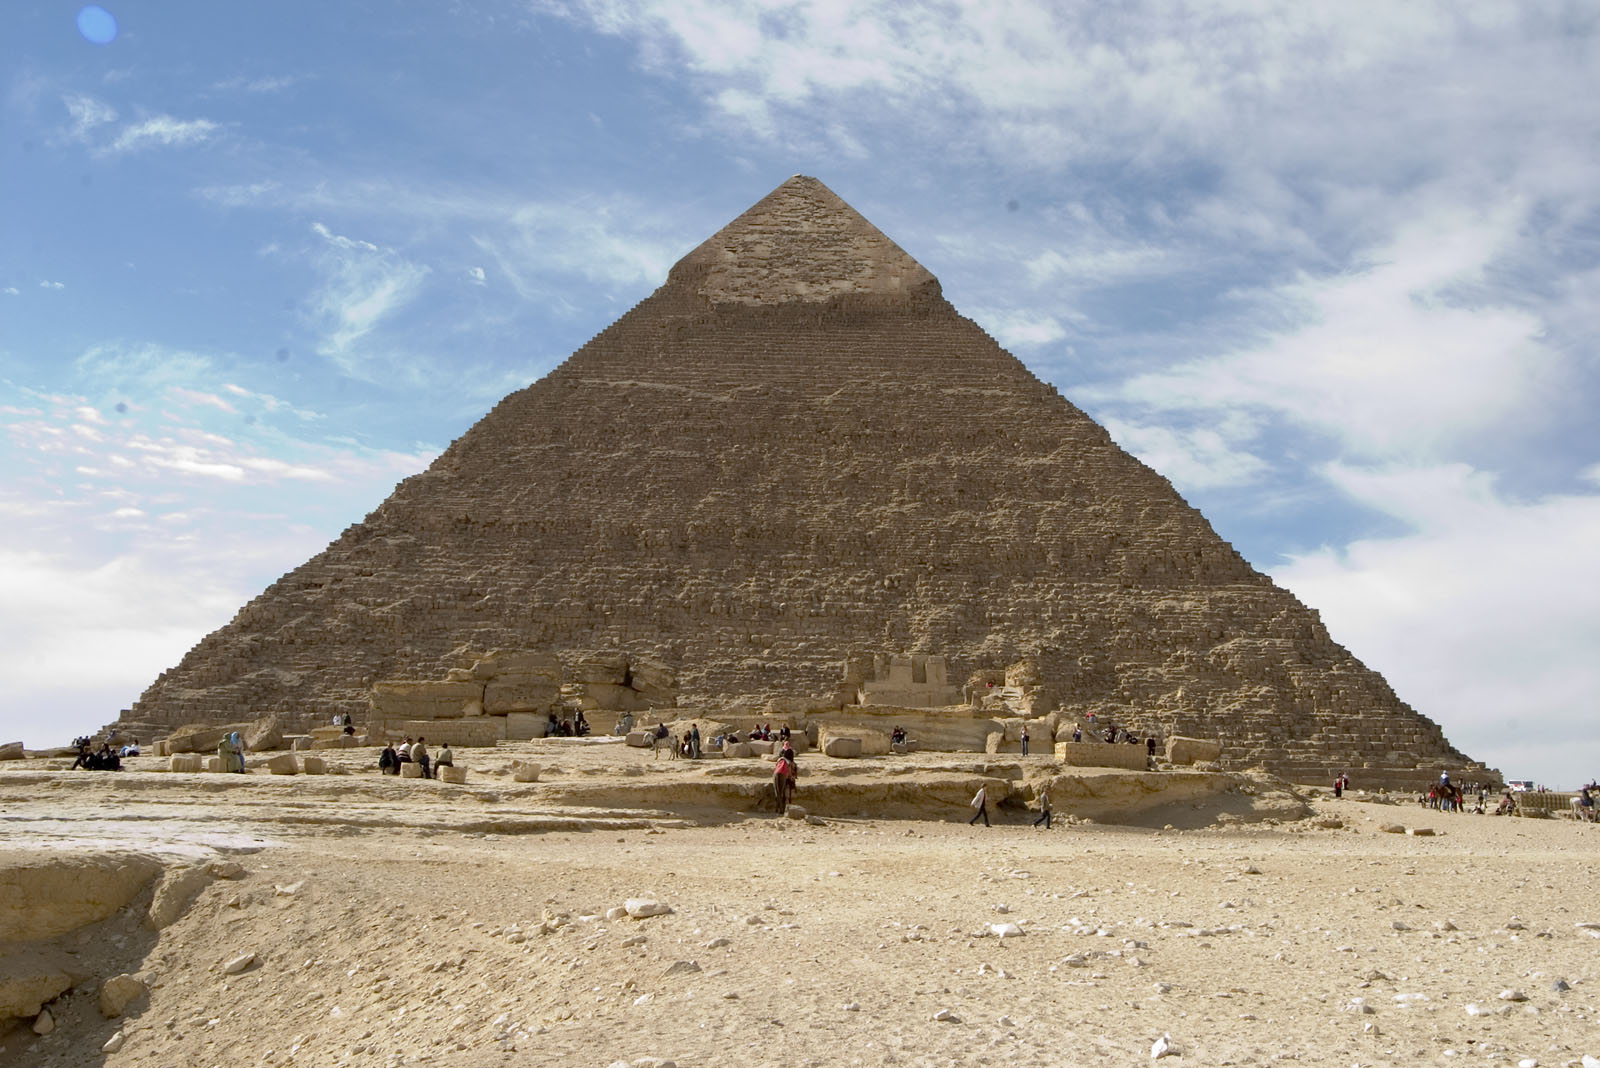 Khafre pyramid and or pyramid temple: Site: Giza; View: Khafre pyramid, Khafre pyramid temple